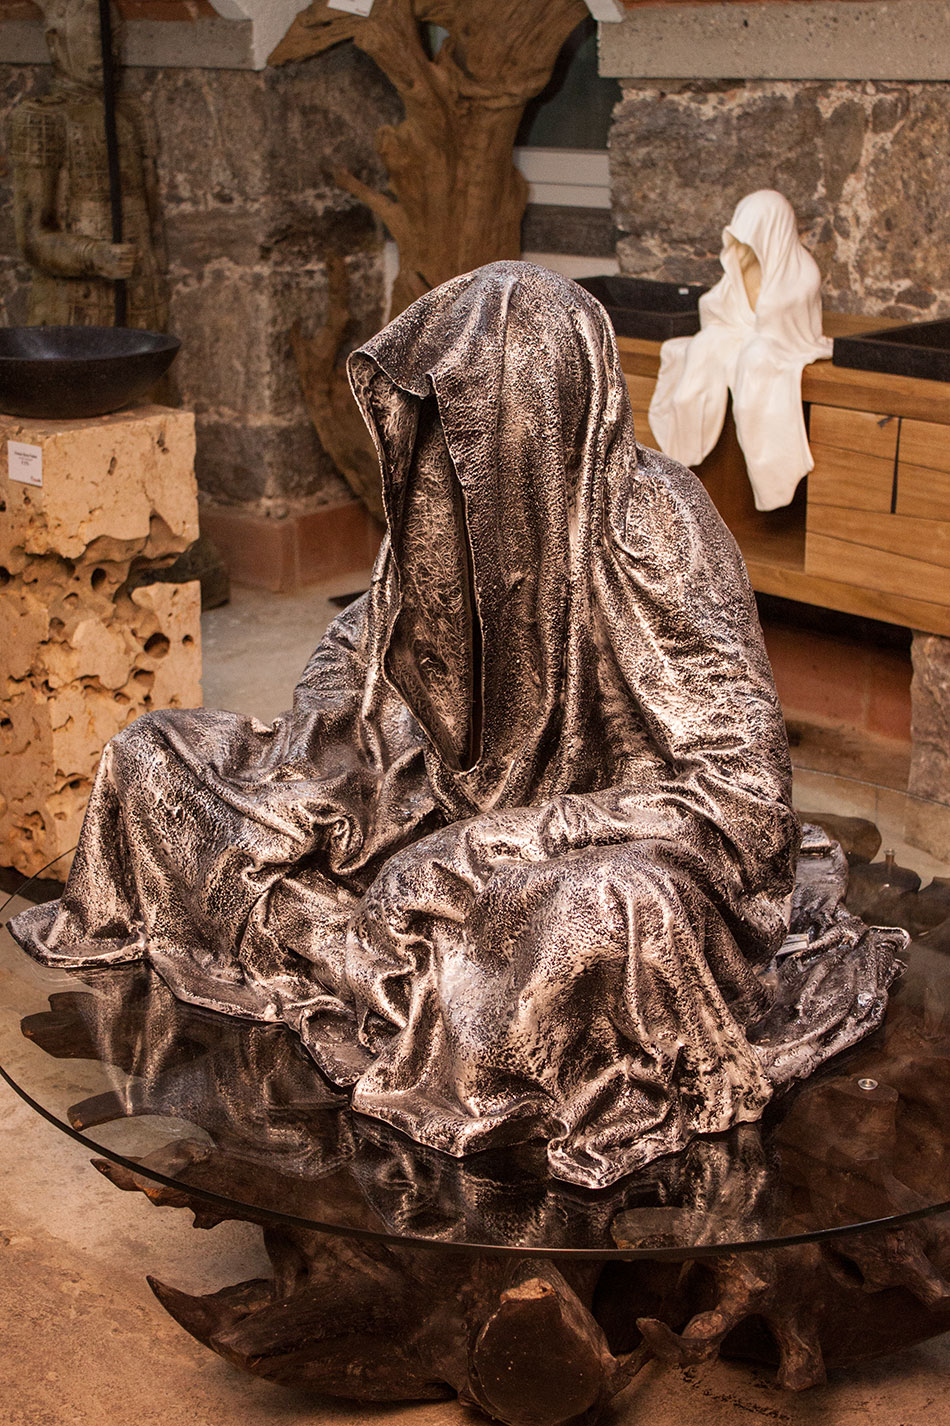 mobile-galerie-gall-toko06-linz-25er-turm-guardians-of-time-manfred-kielnhofer-contemporary-fine-art-design-sculpture-2655